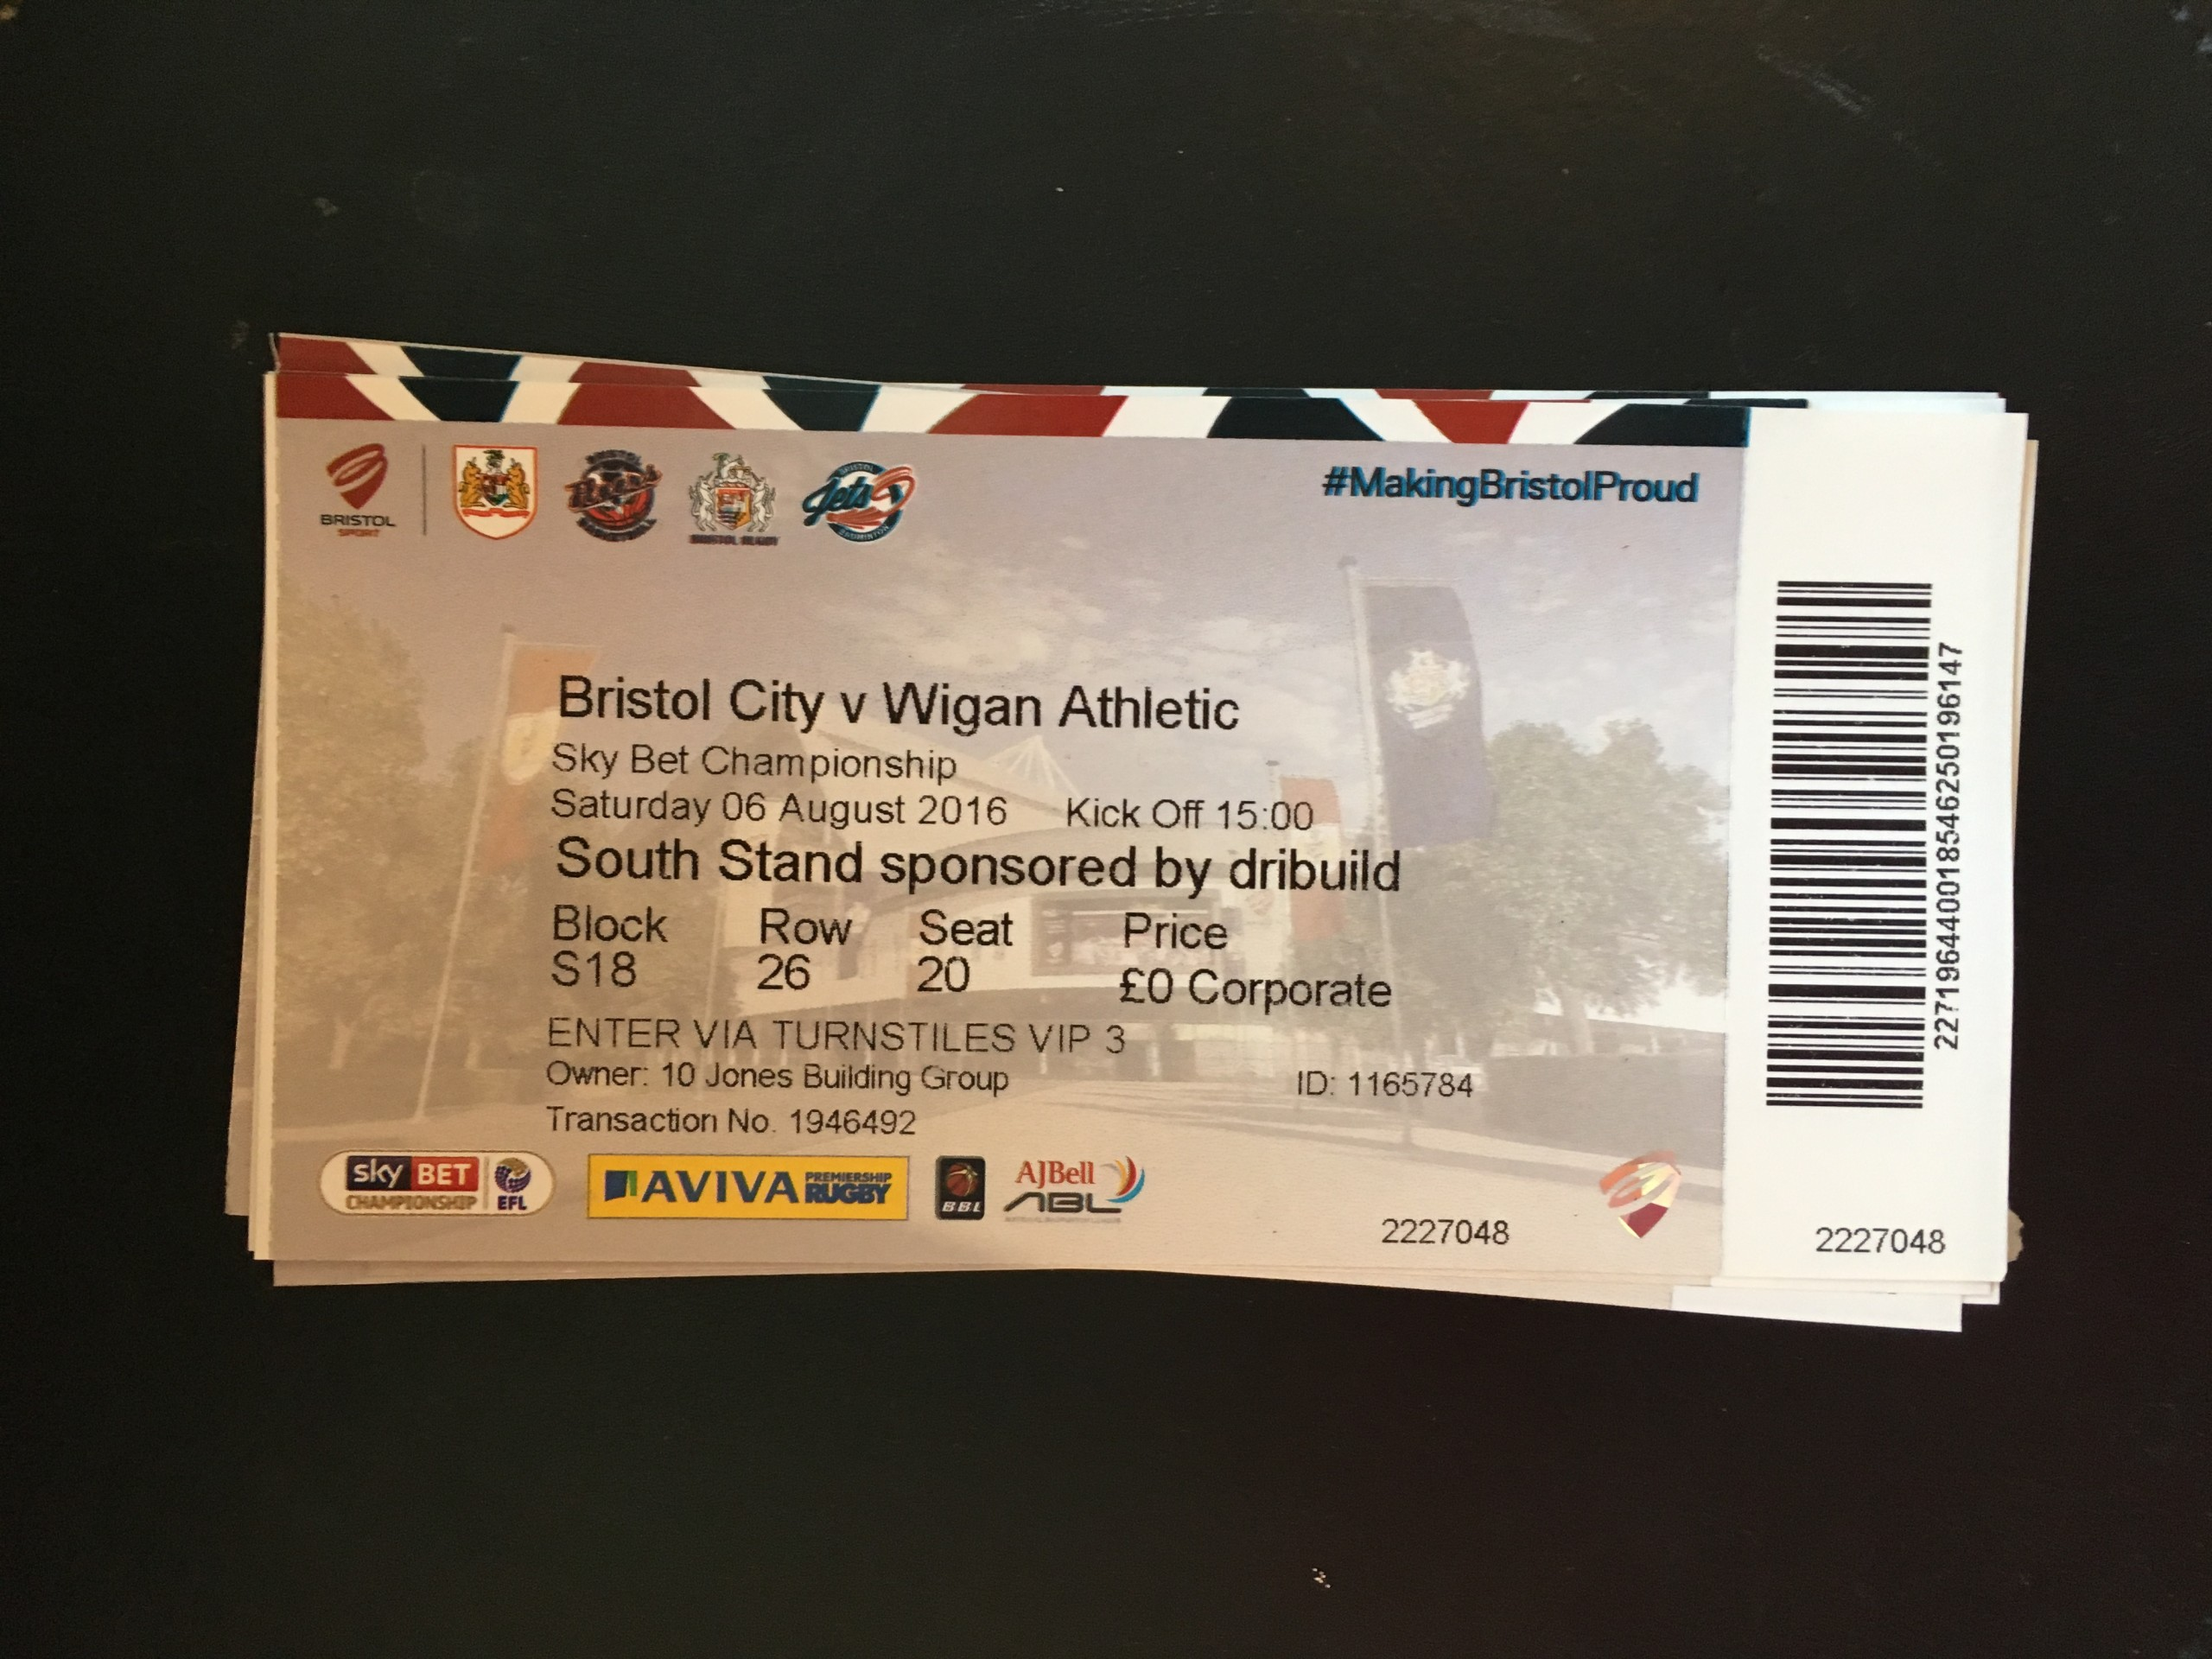 Bristol City v Wigan Athletic 06-08-2016 Ticket